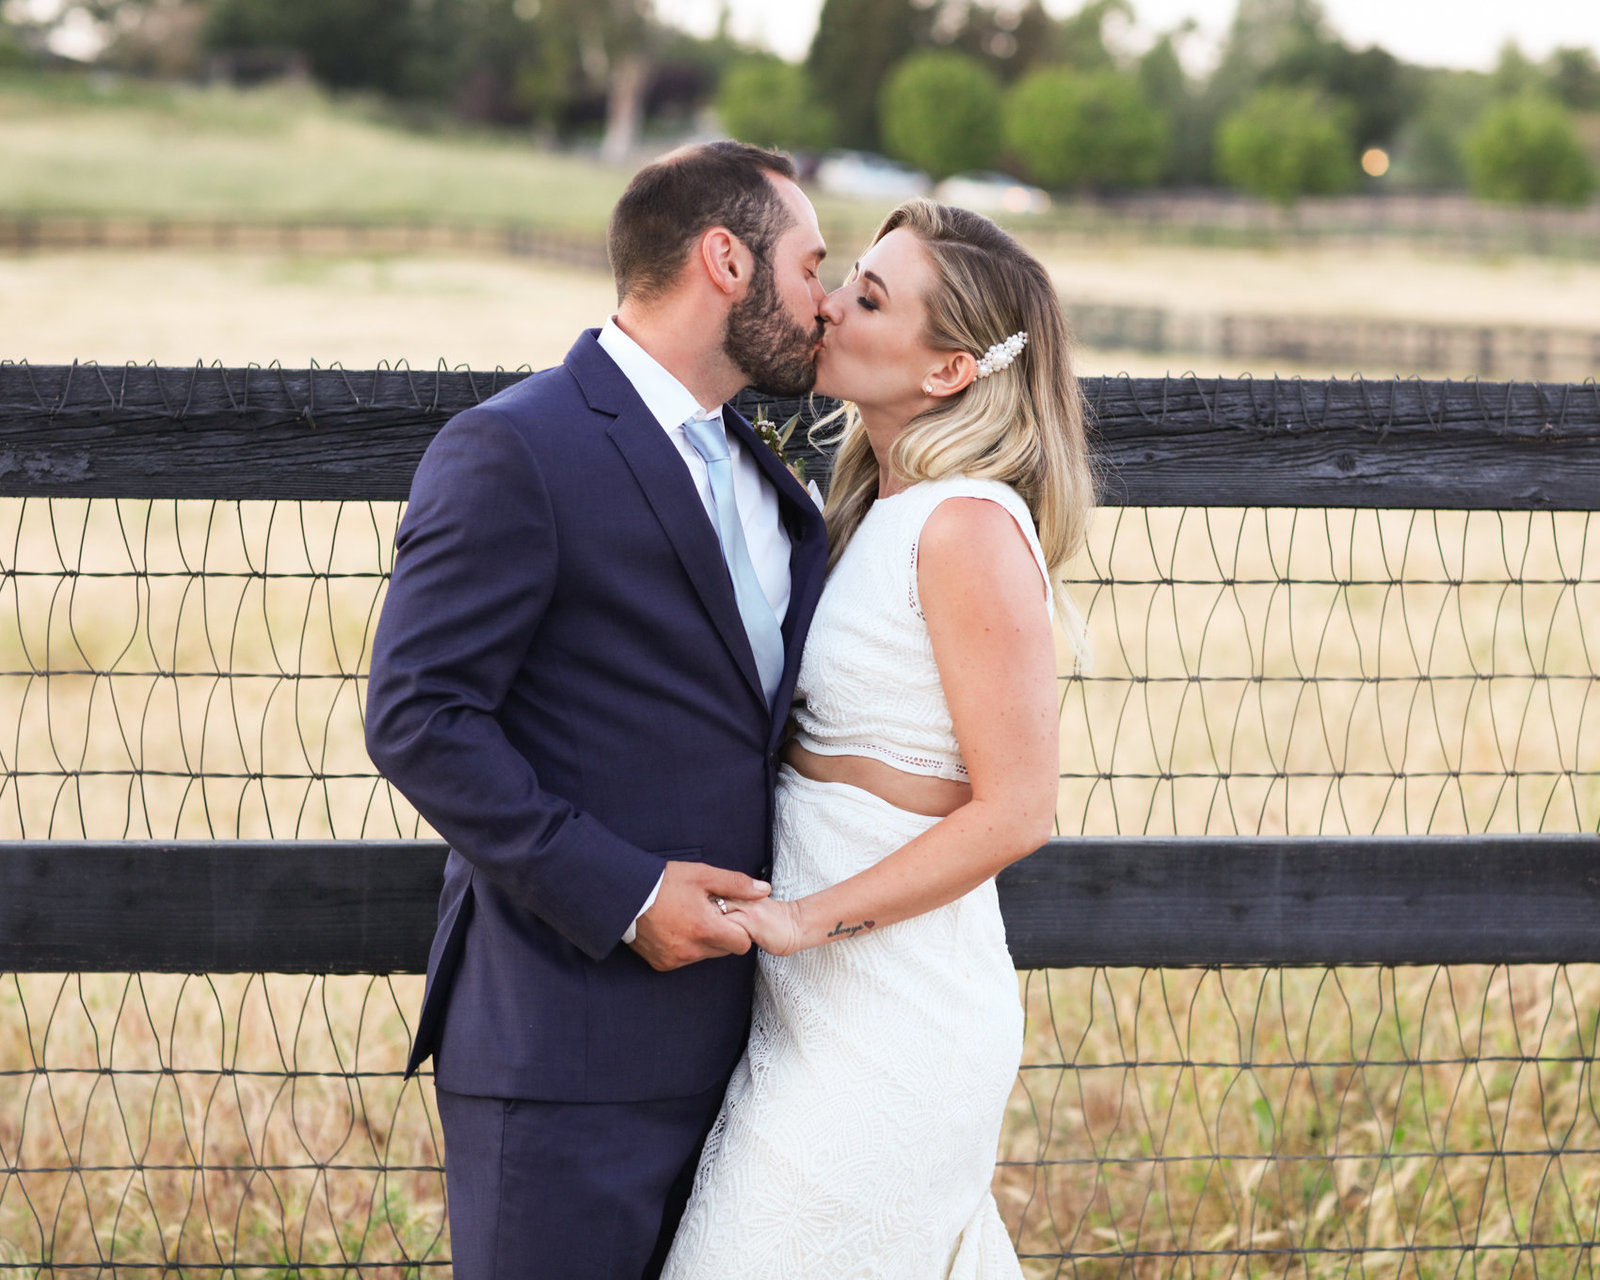 Bride and groom kiss, beautiful wedding in a rustic setting